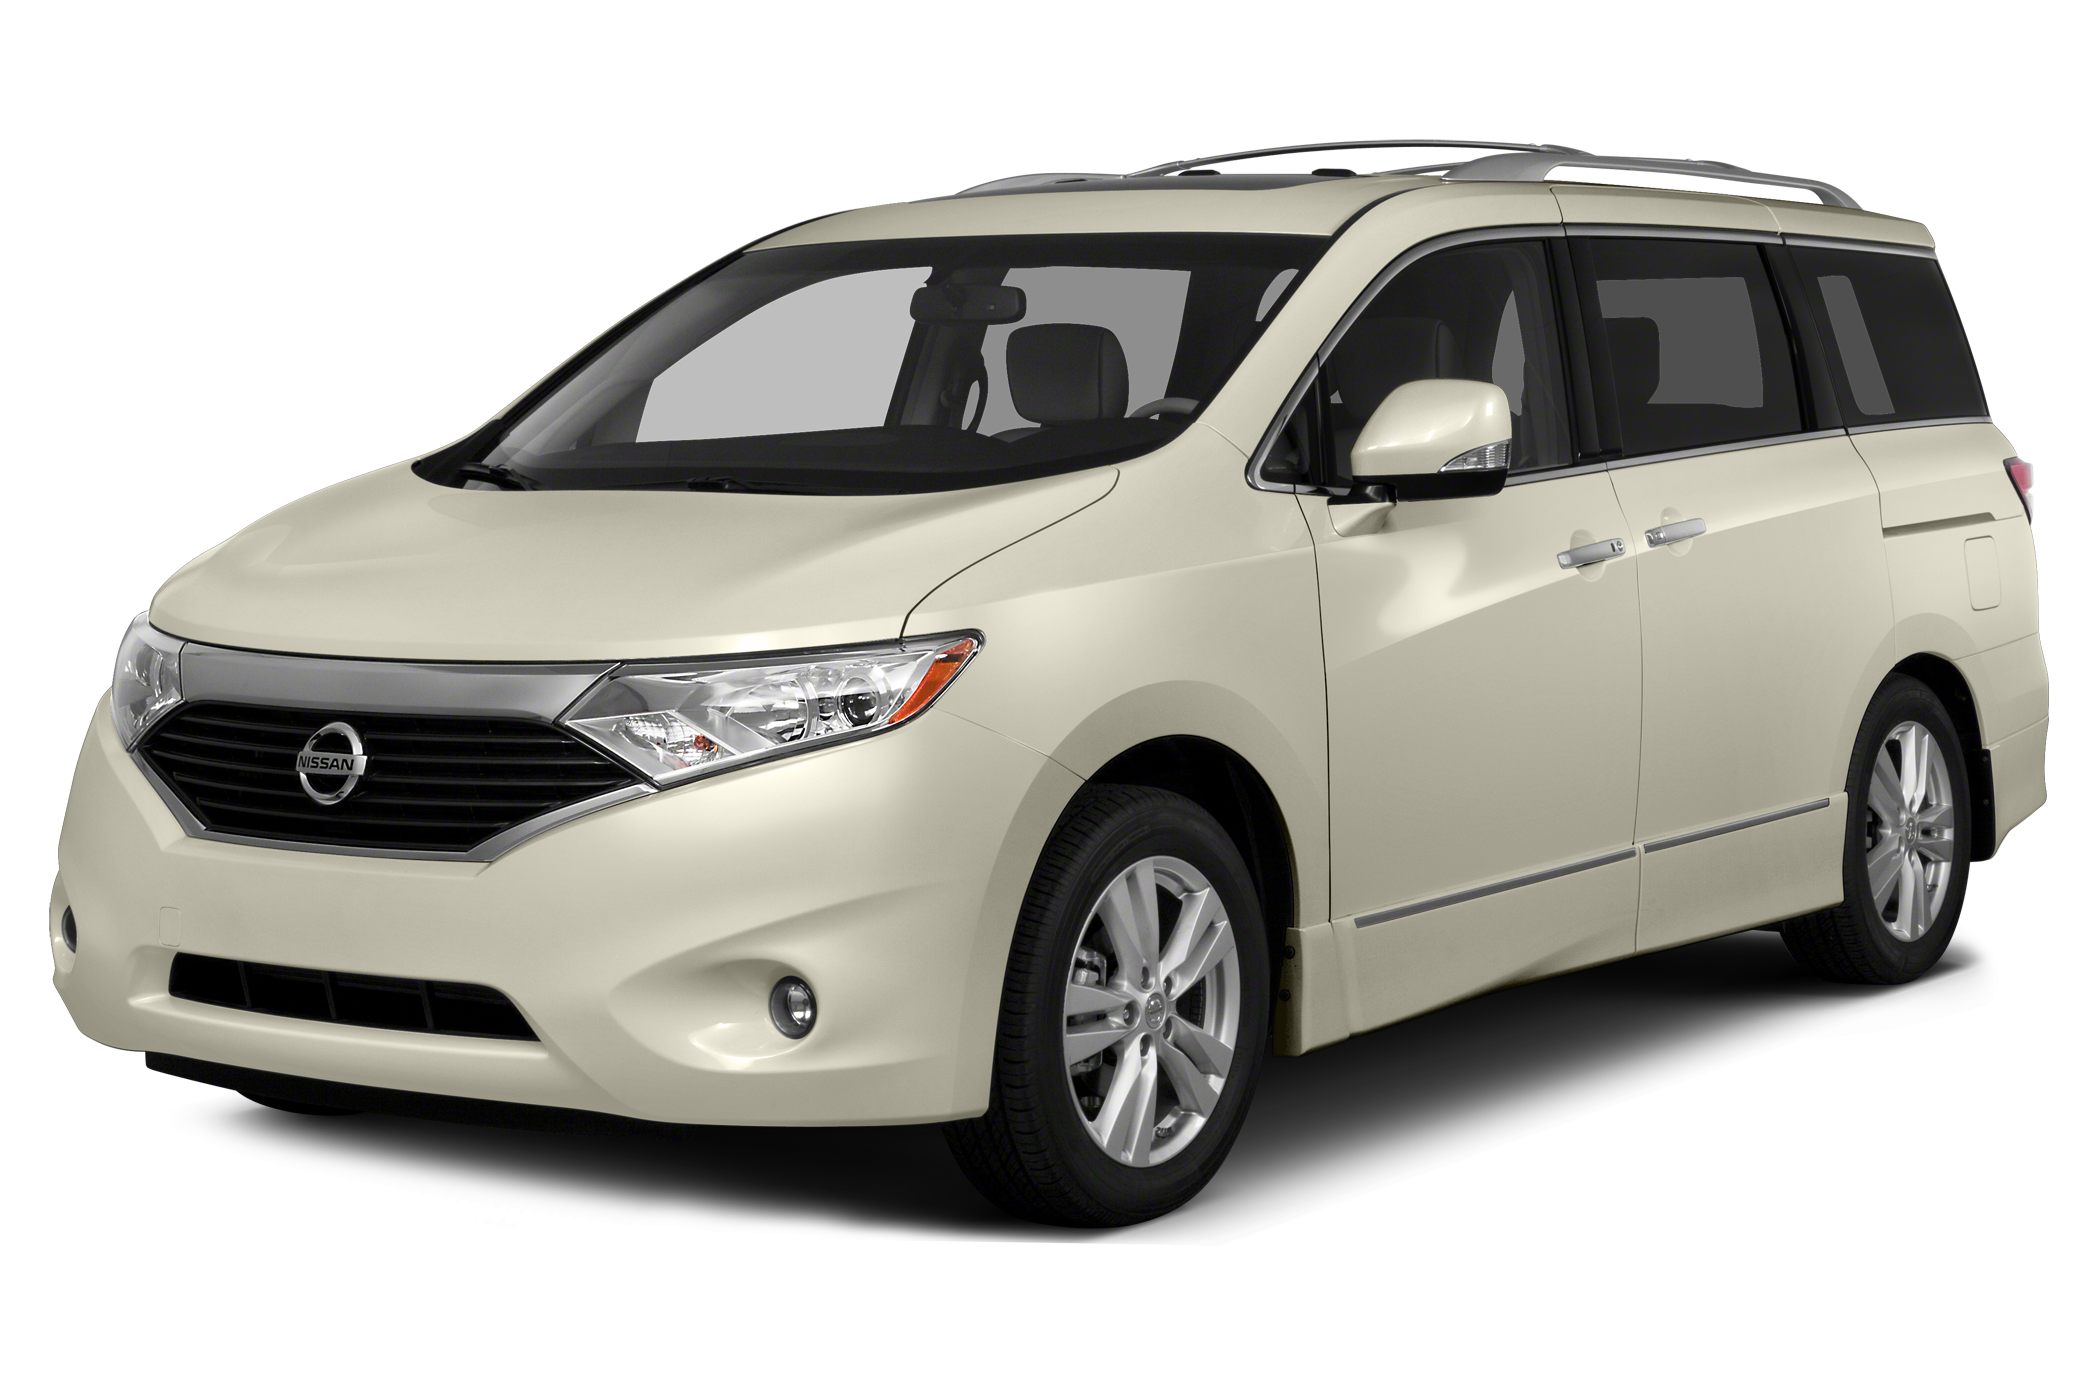 2015 Nissan Quest SV Minivan for sale in Milwaukee for $35,160 with 1 miles.